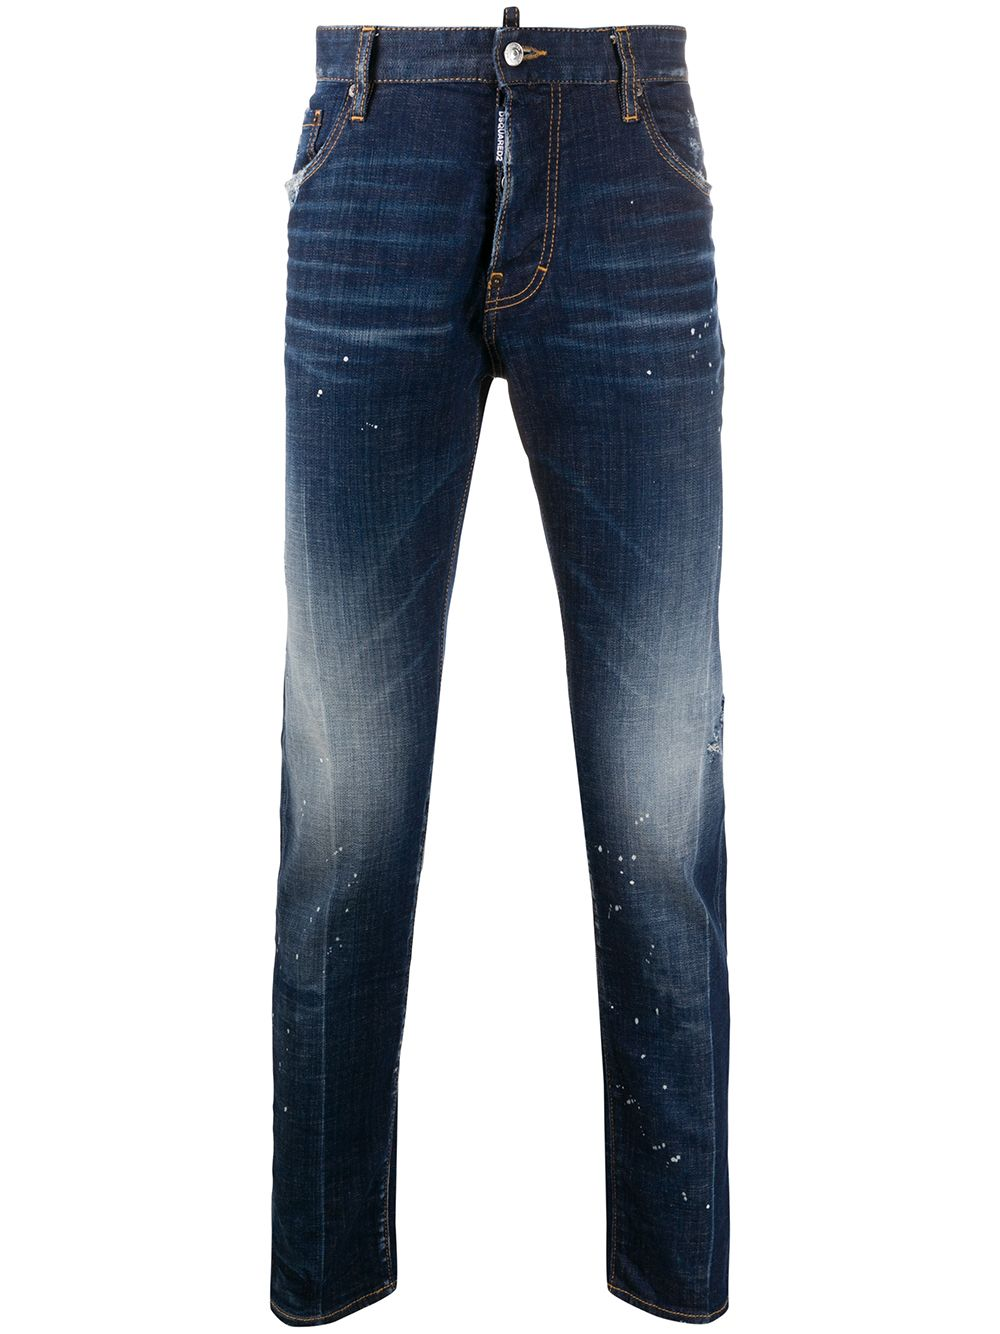 DSQUARED2 Splatter Effect Slim Fit Jeans Blue - Maison De Fashion